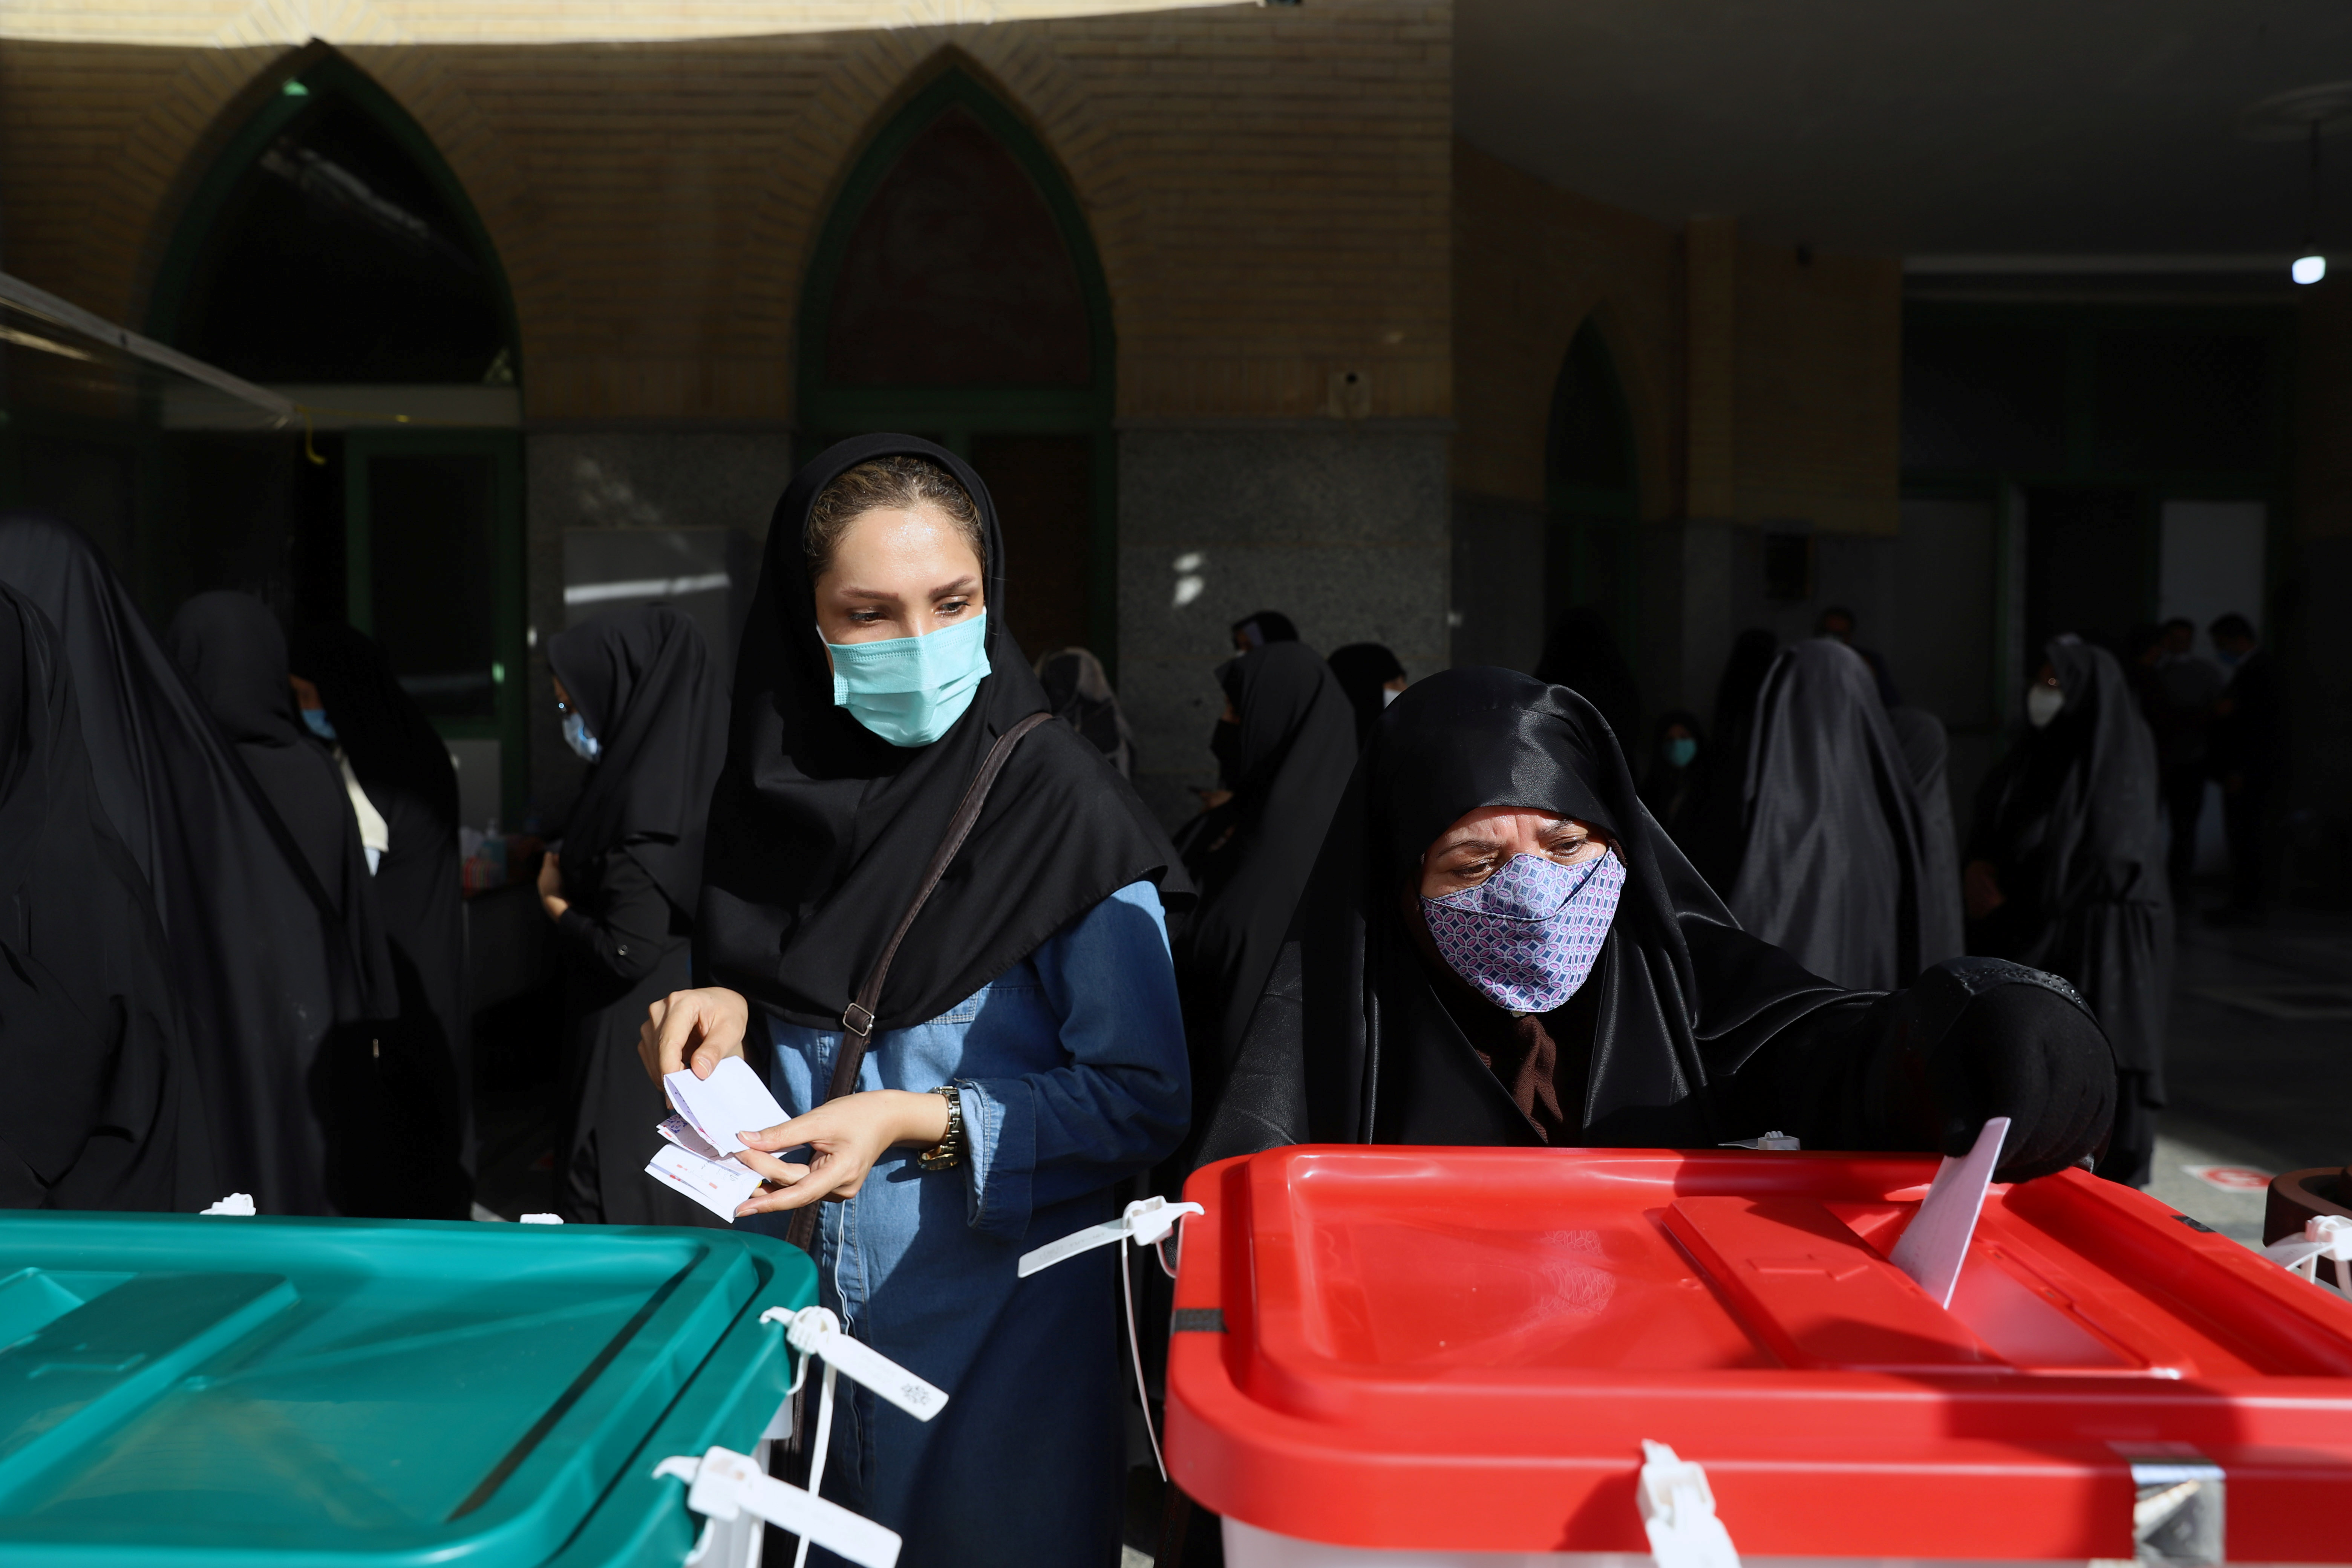 An Iranian woman casts her vote during presidential elections at a polling station in Tehran, Iran June 18, 2021. Majid Asgaripour/WANA (West Asia News Agency) via REUTERS ATTENTION EDITORS - THIS IMAGE HAS BEEN SUPPLIED BY A THIRD PARTY.